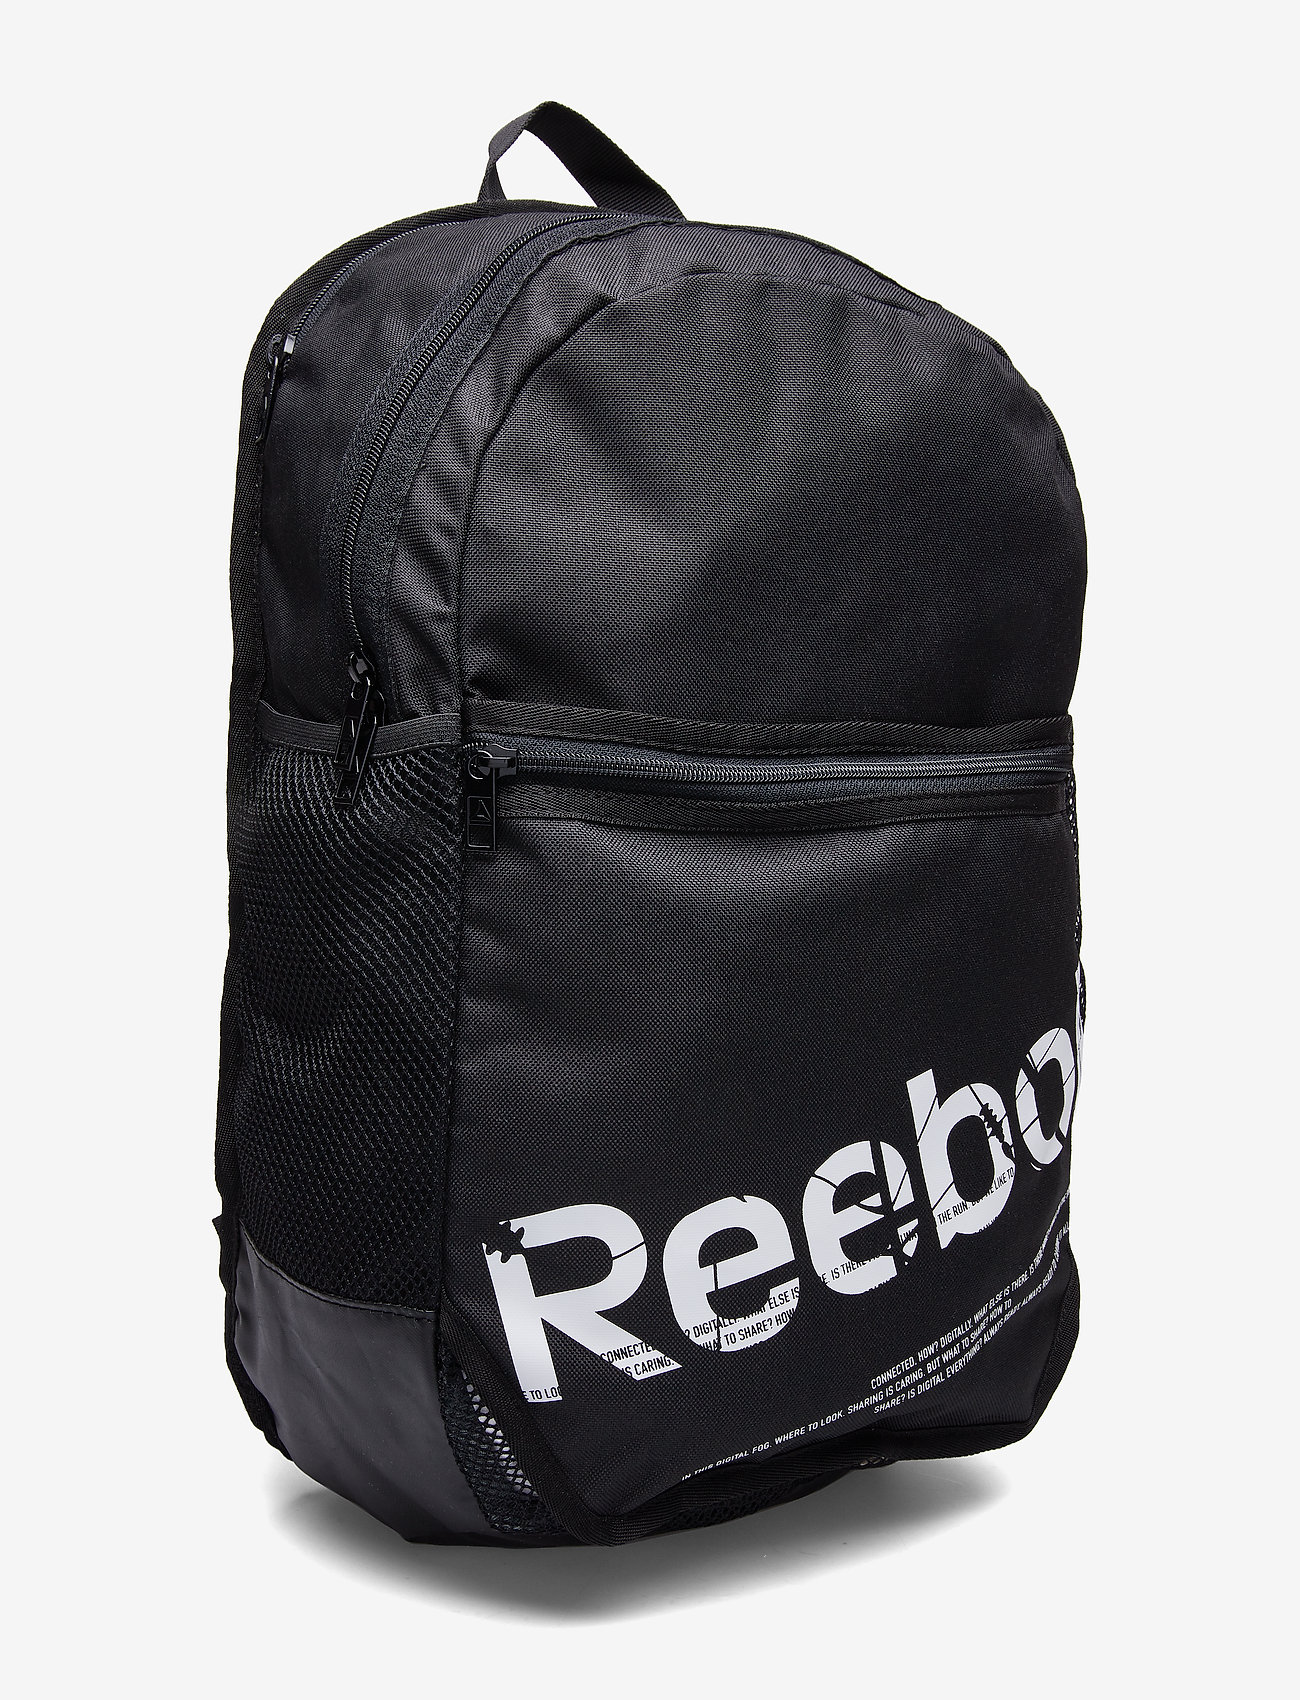 Wor Active Gr Bp (Black) (34.95 €) - Reebok Performance k5Ud1